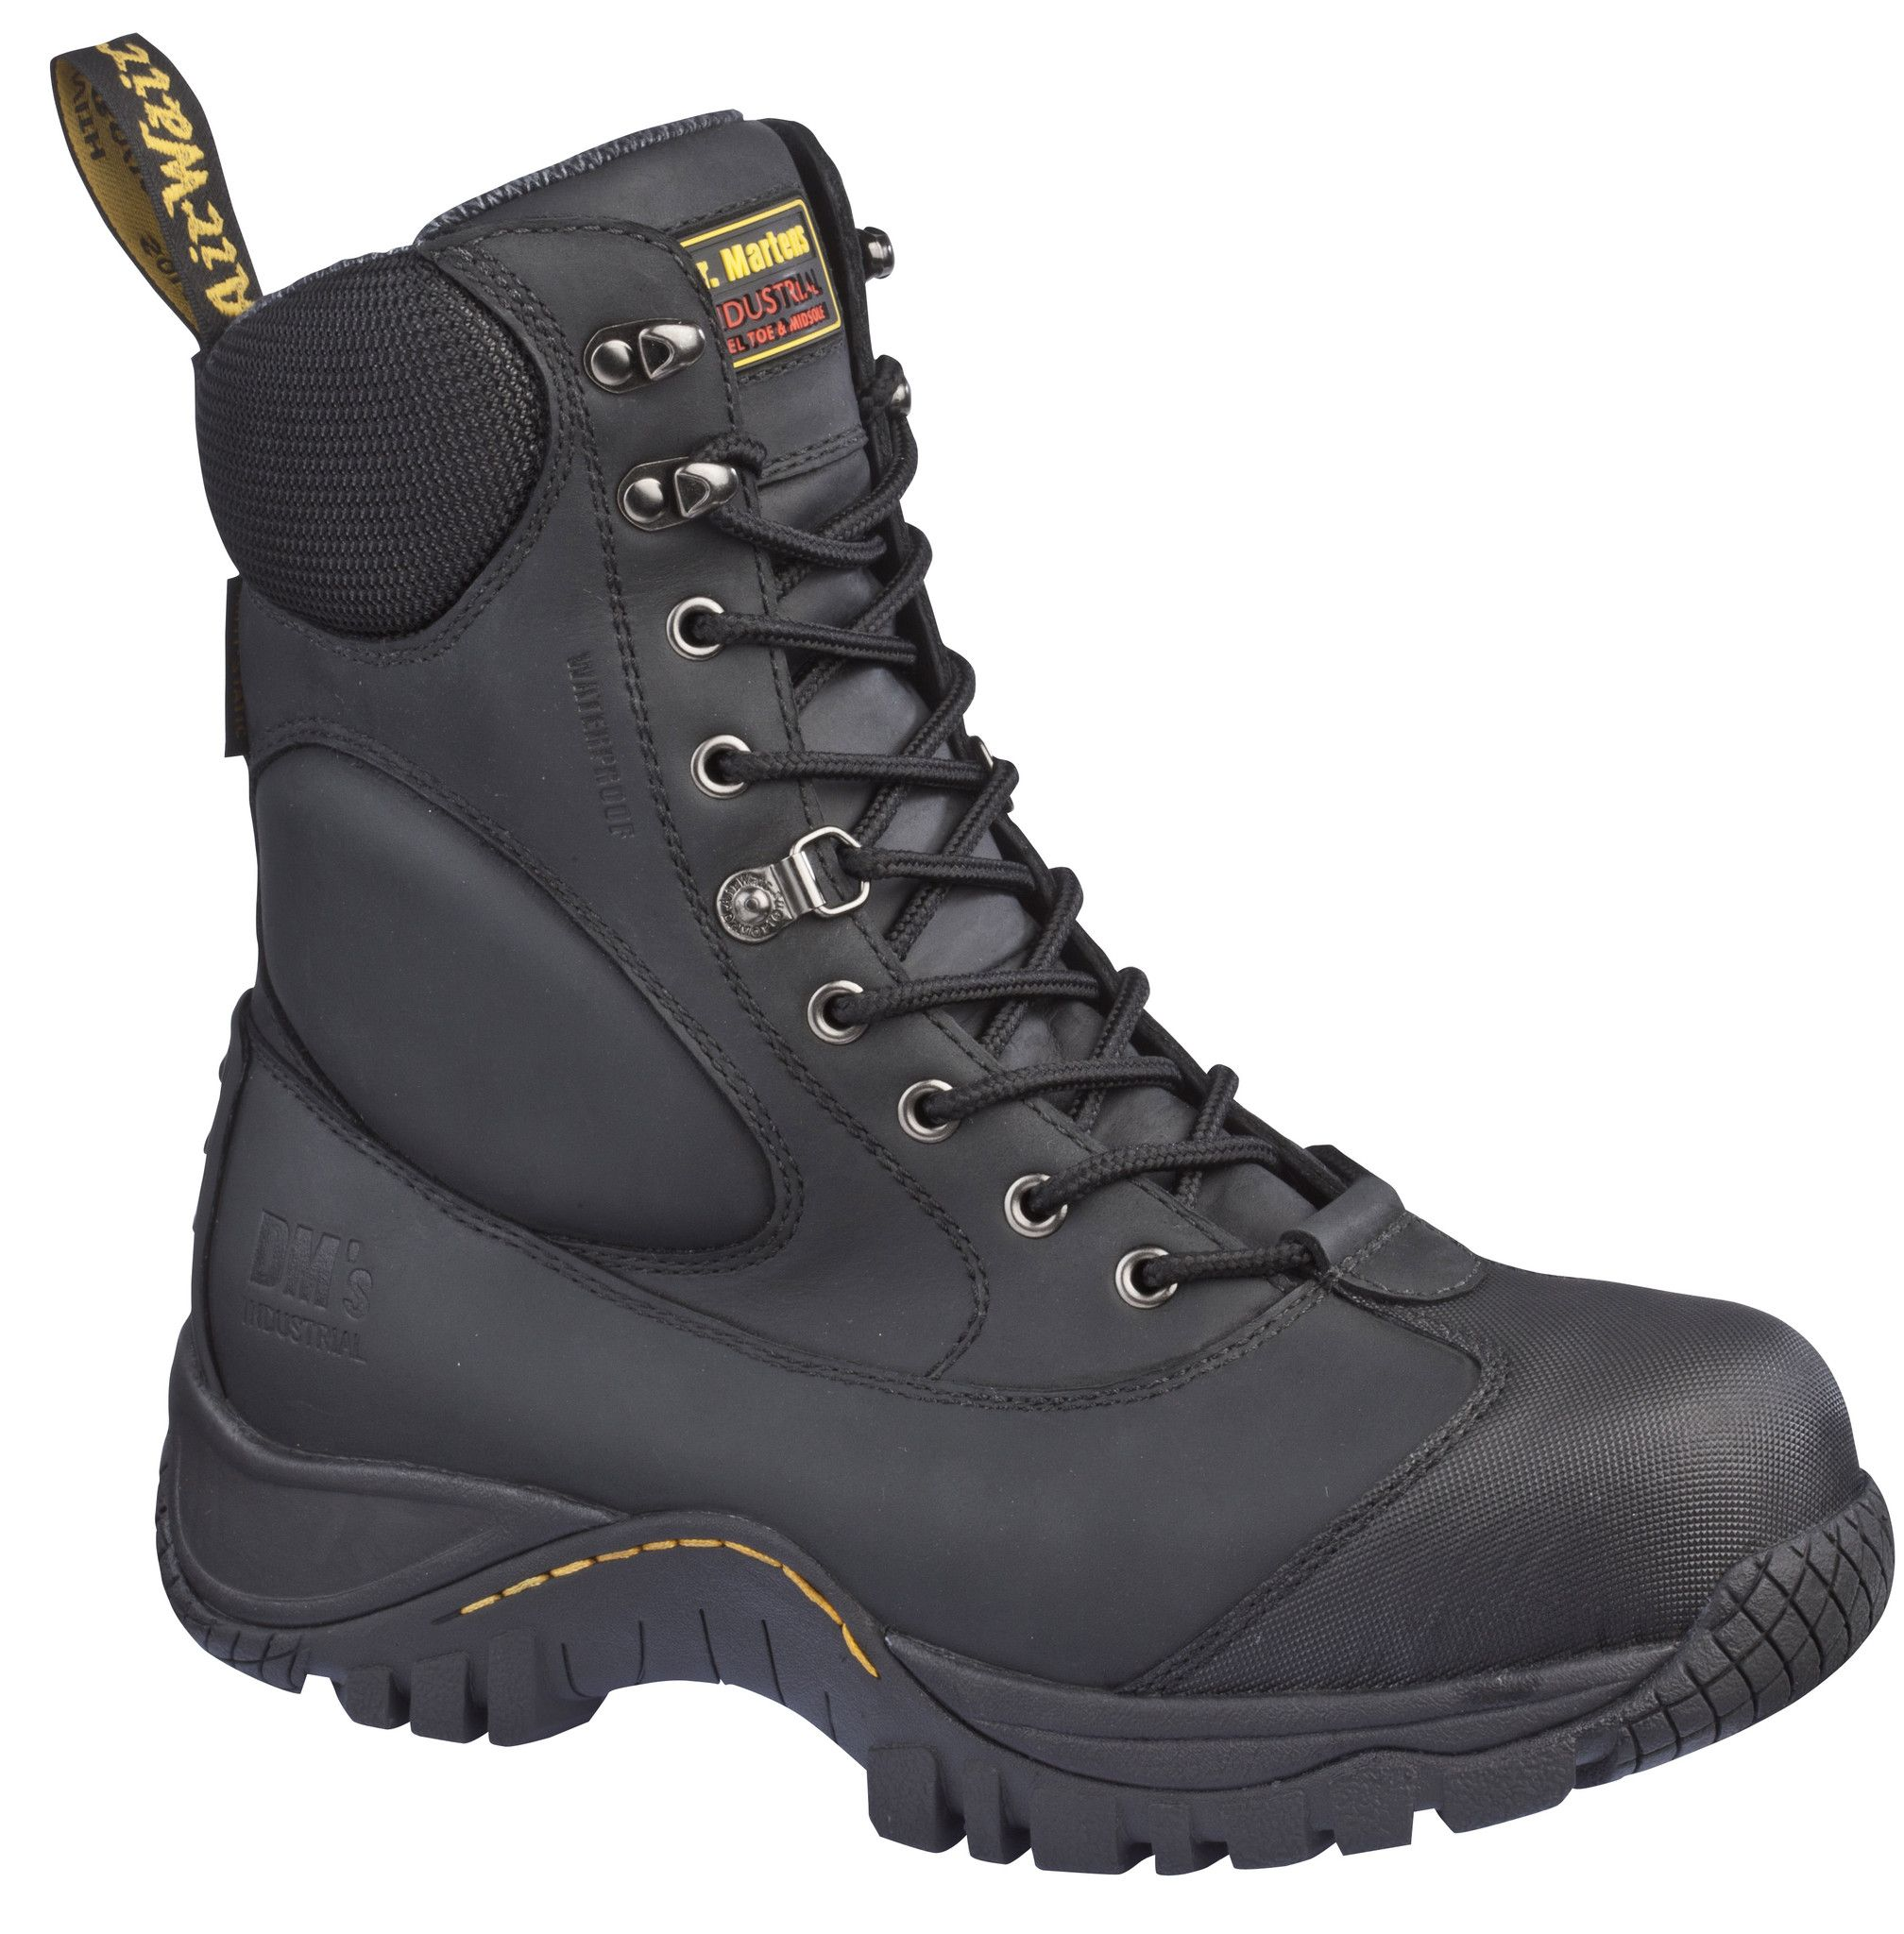 Dr Martens Tamarack Waterproof Tactical Steel Toe Boot Black